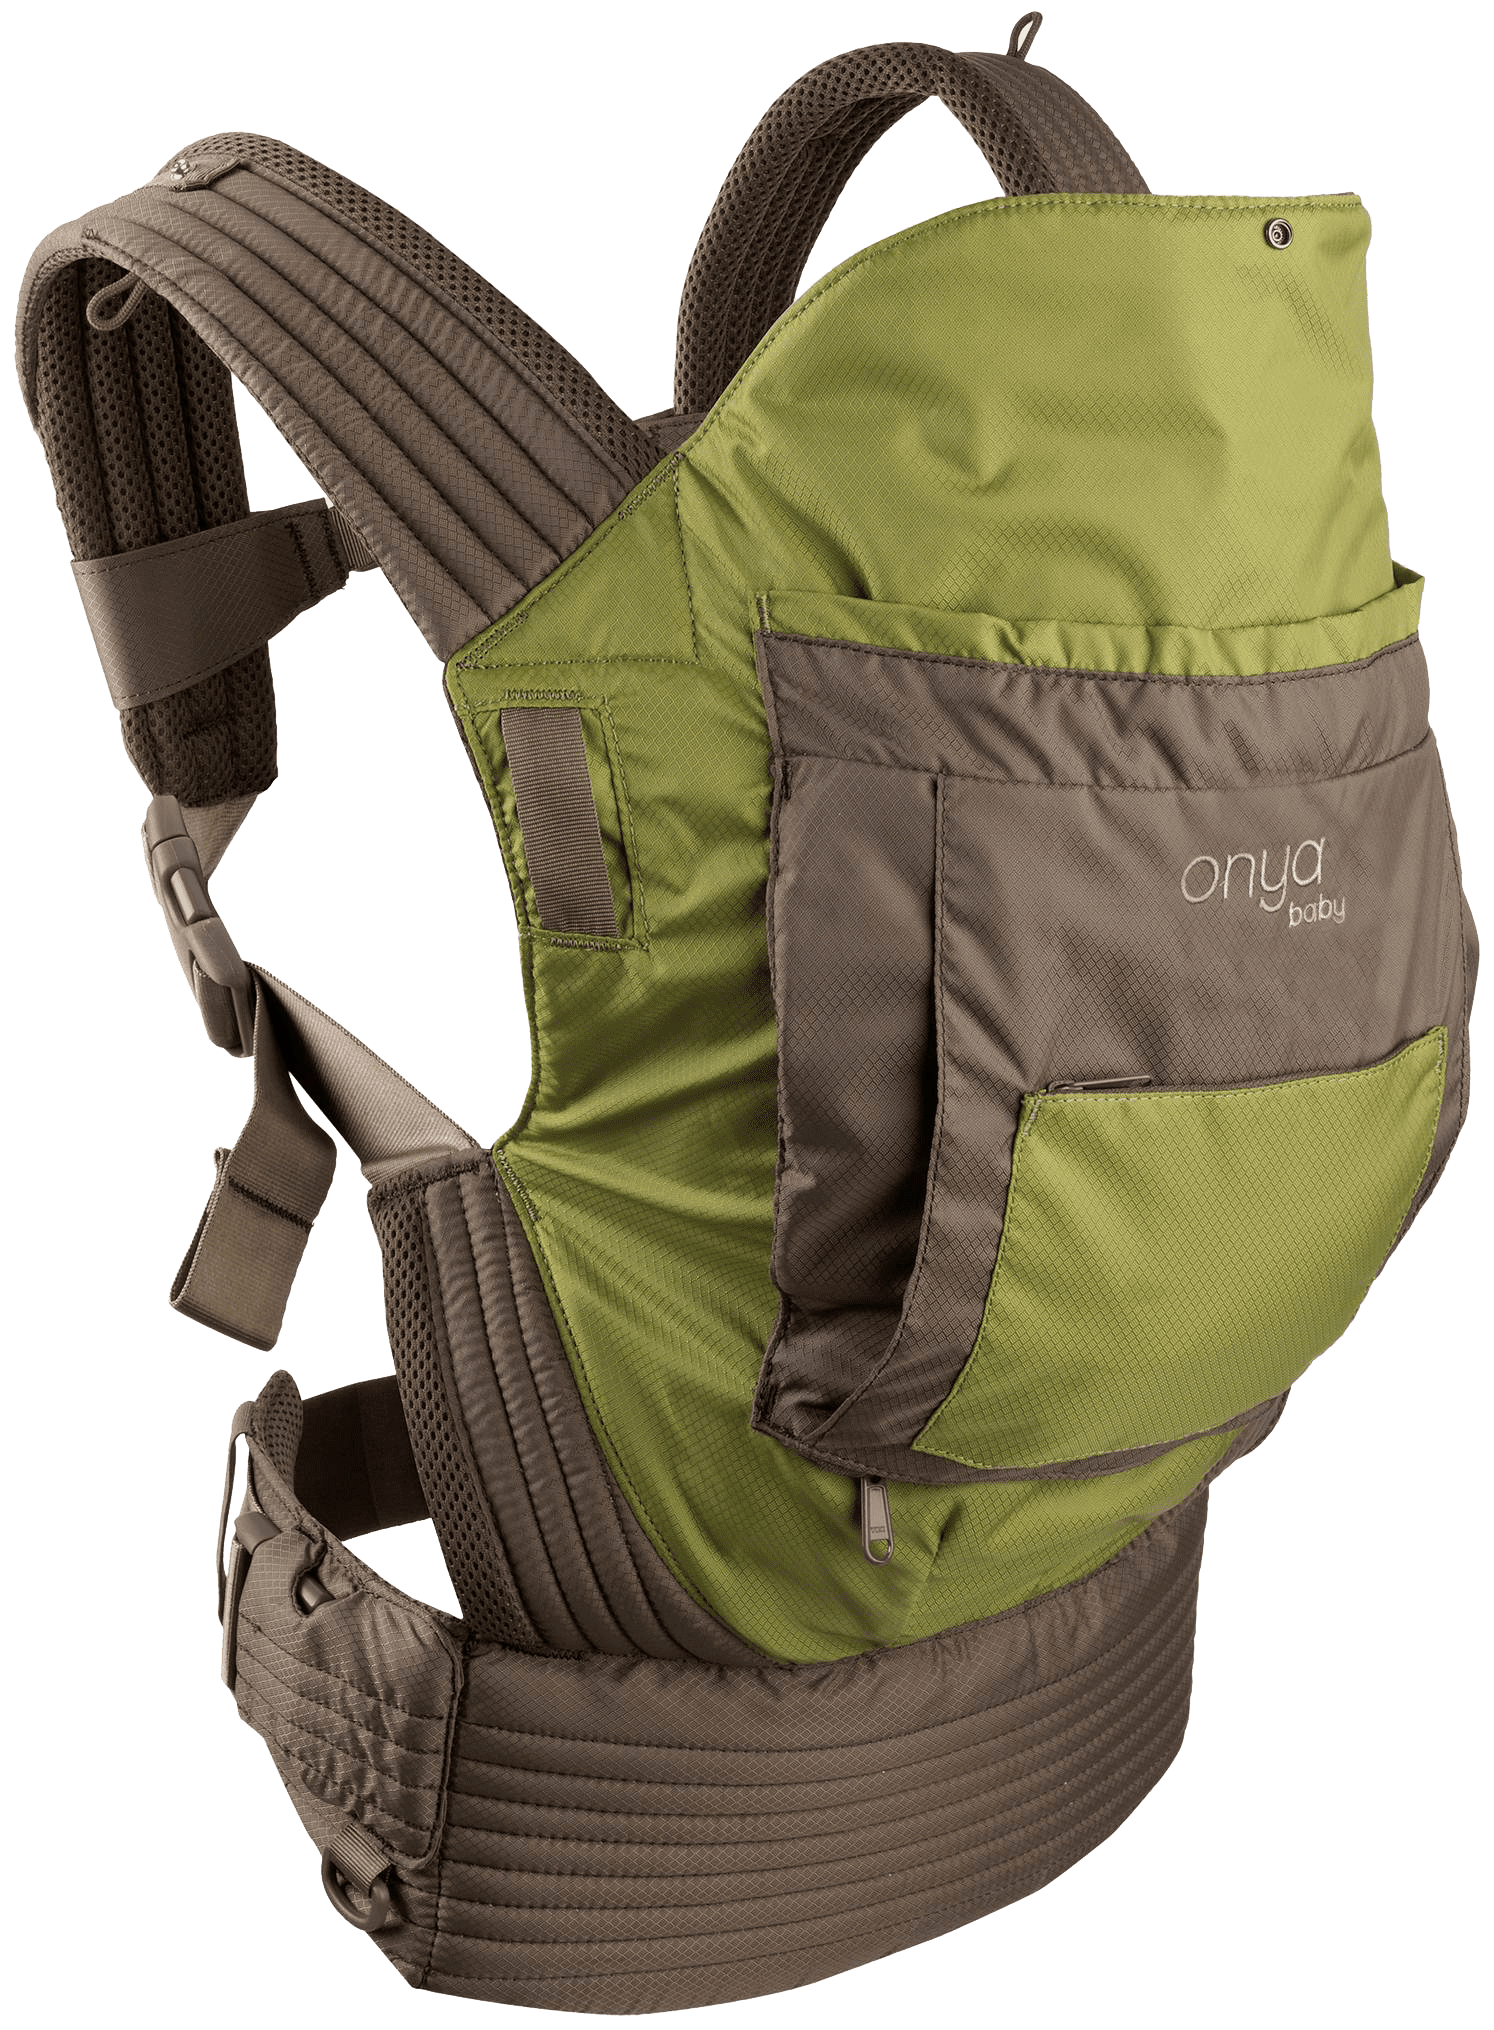 Onya Baby Outback Baby Carrier Olive Green Chocolate Chip by Onya Baby